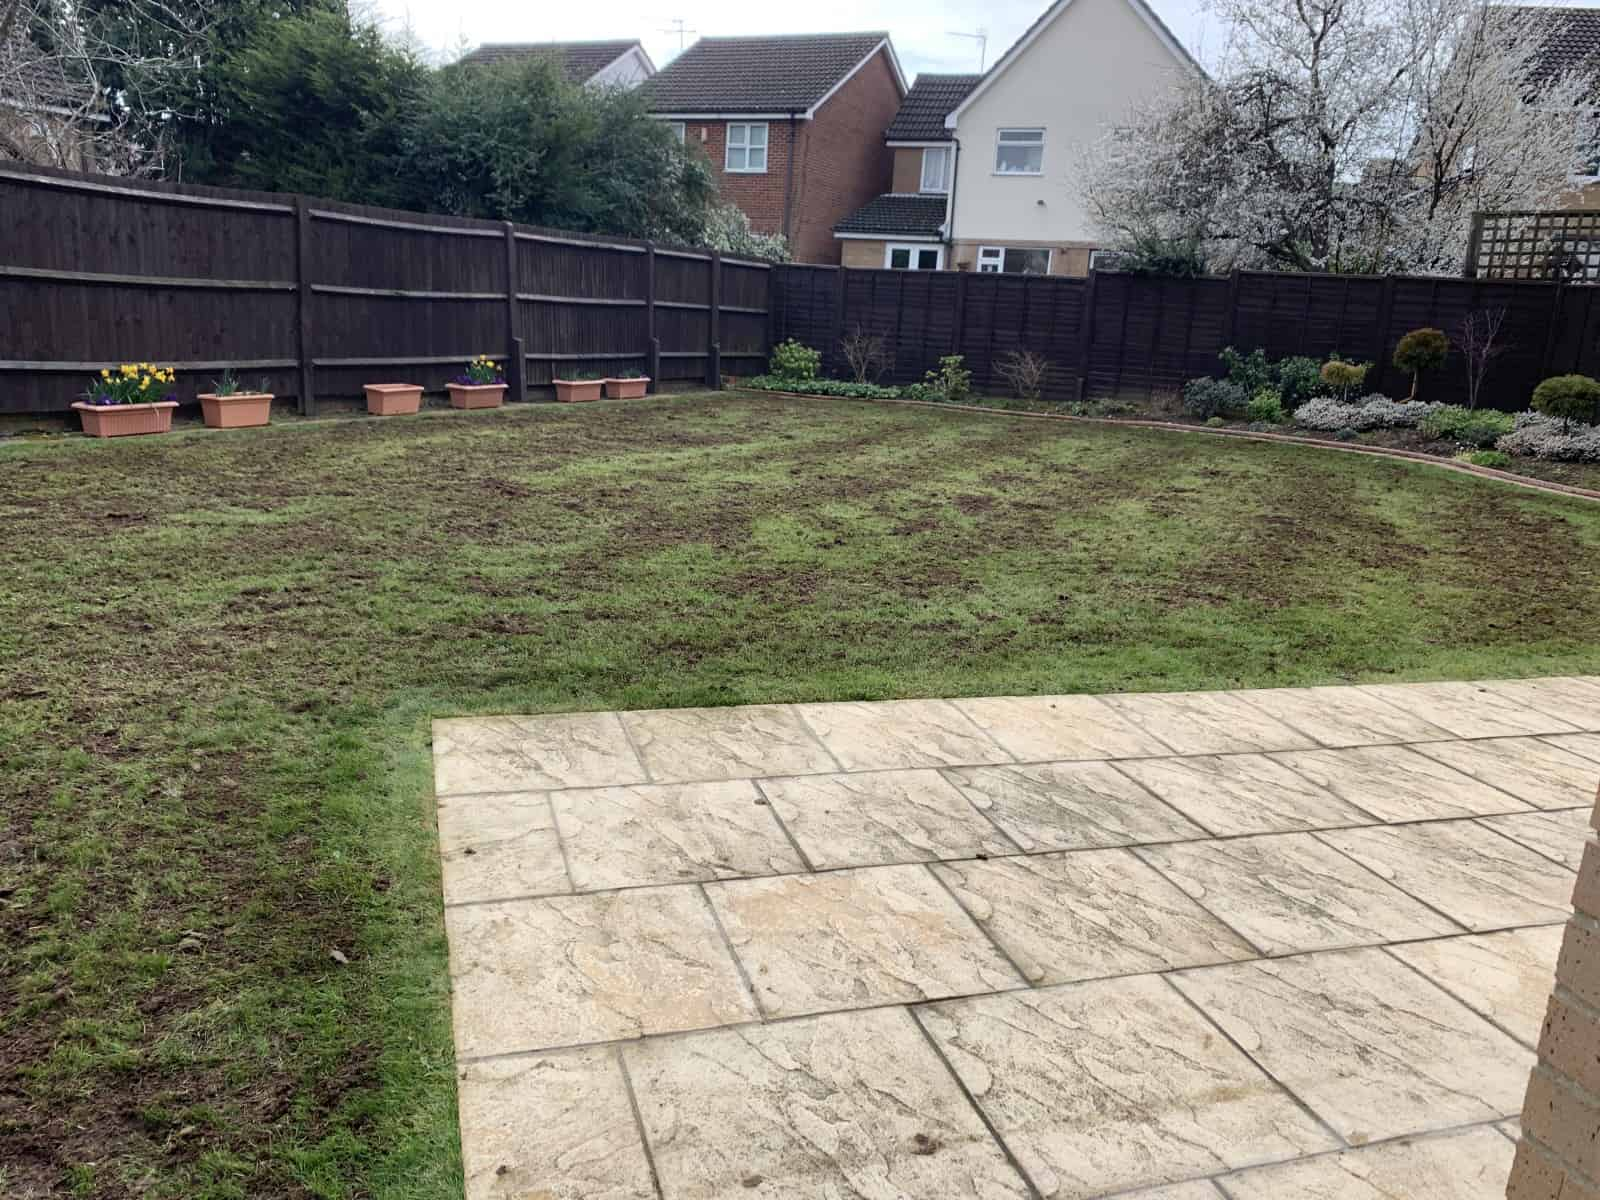 Mechanical lawn treatments - aeration and scarification